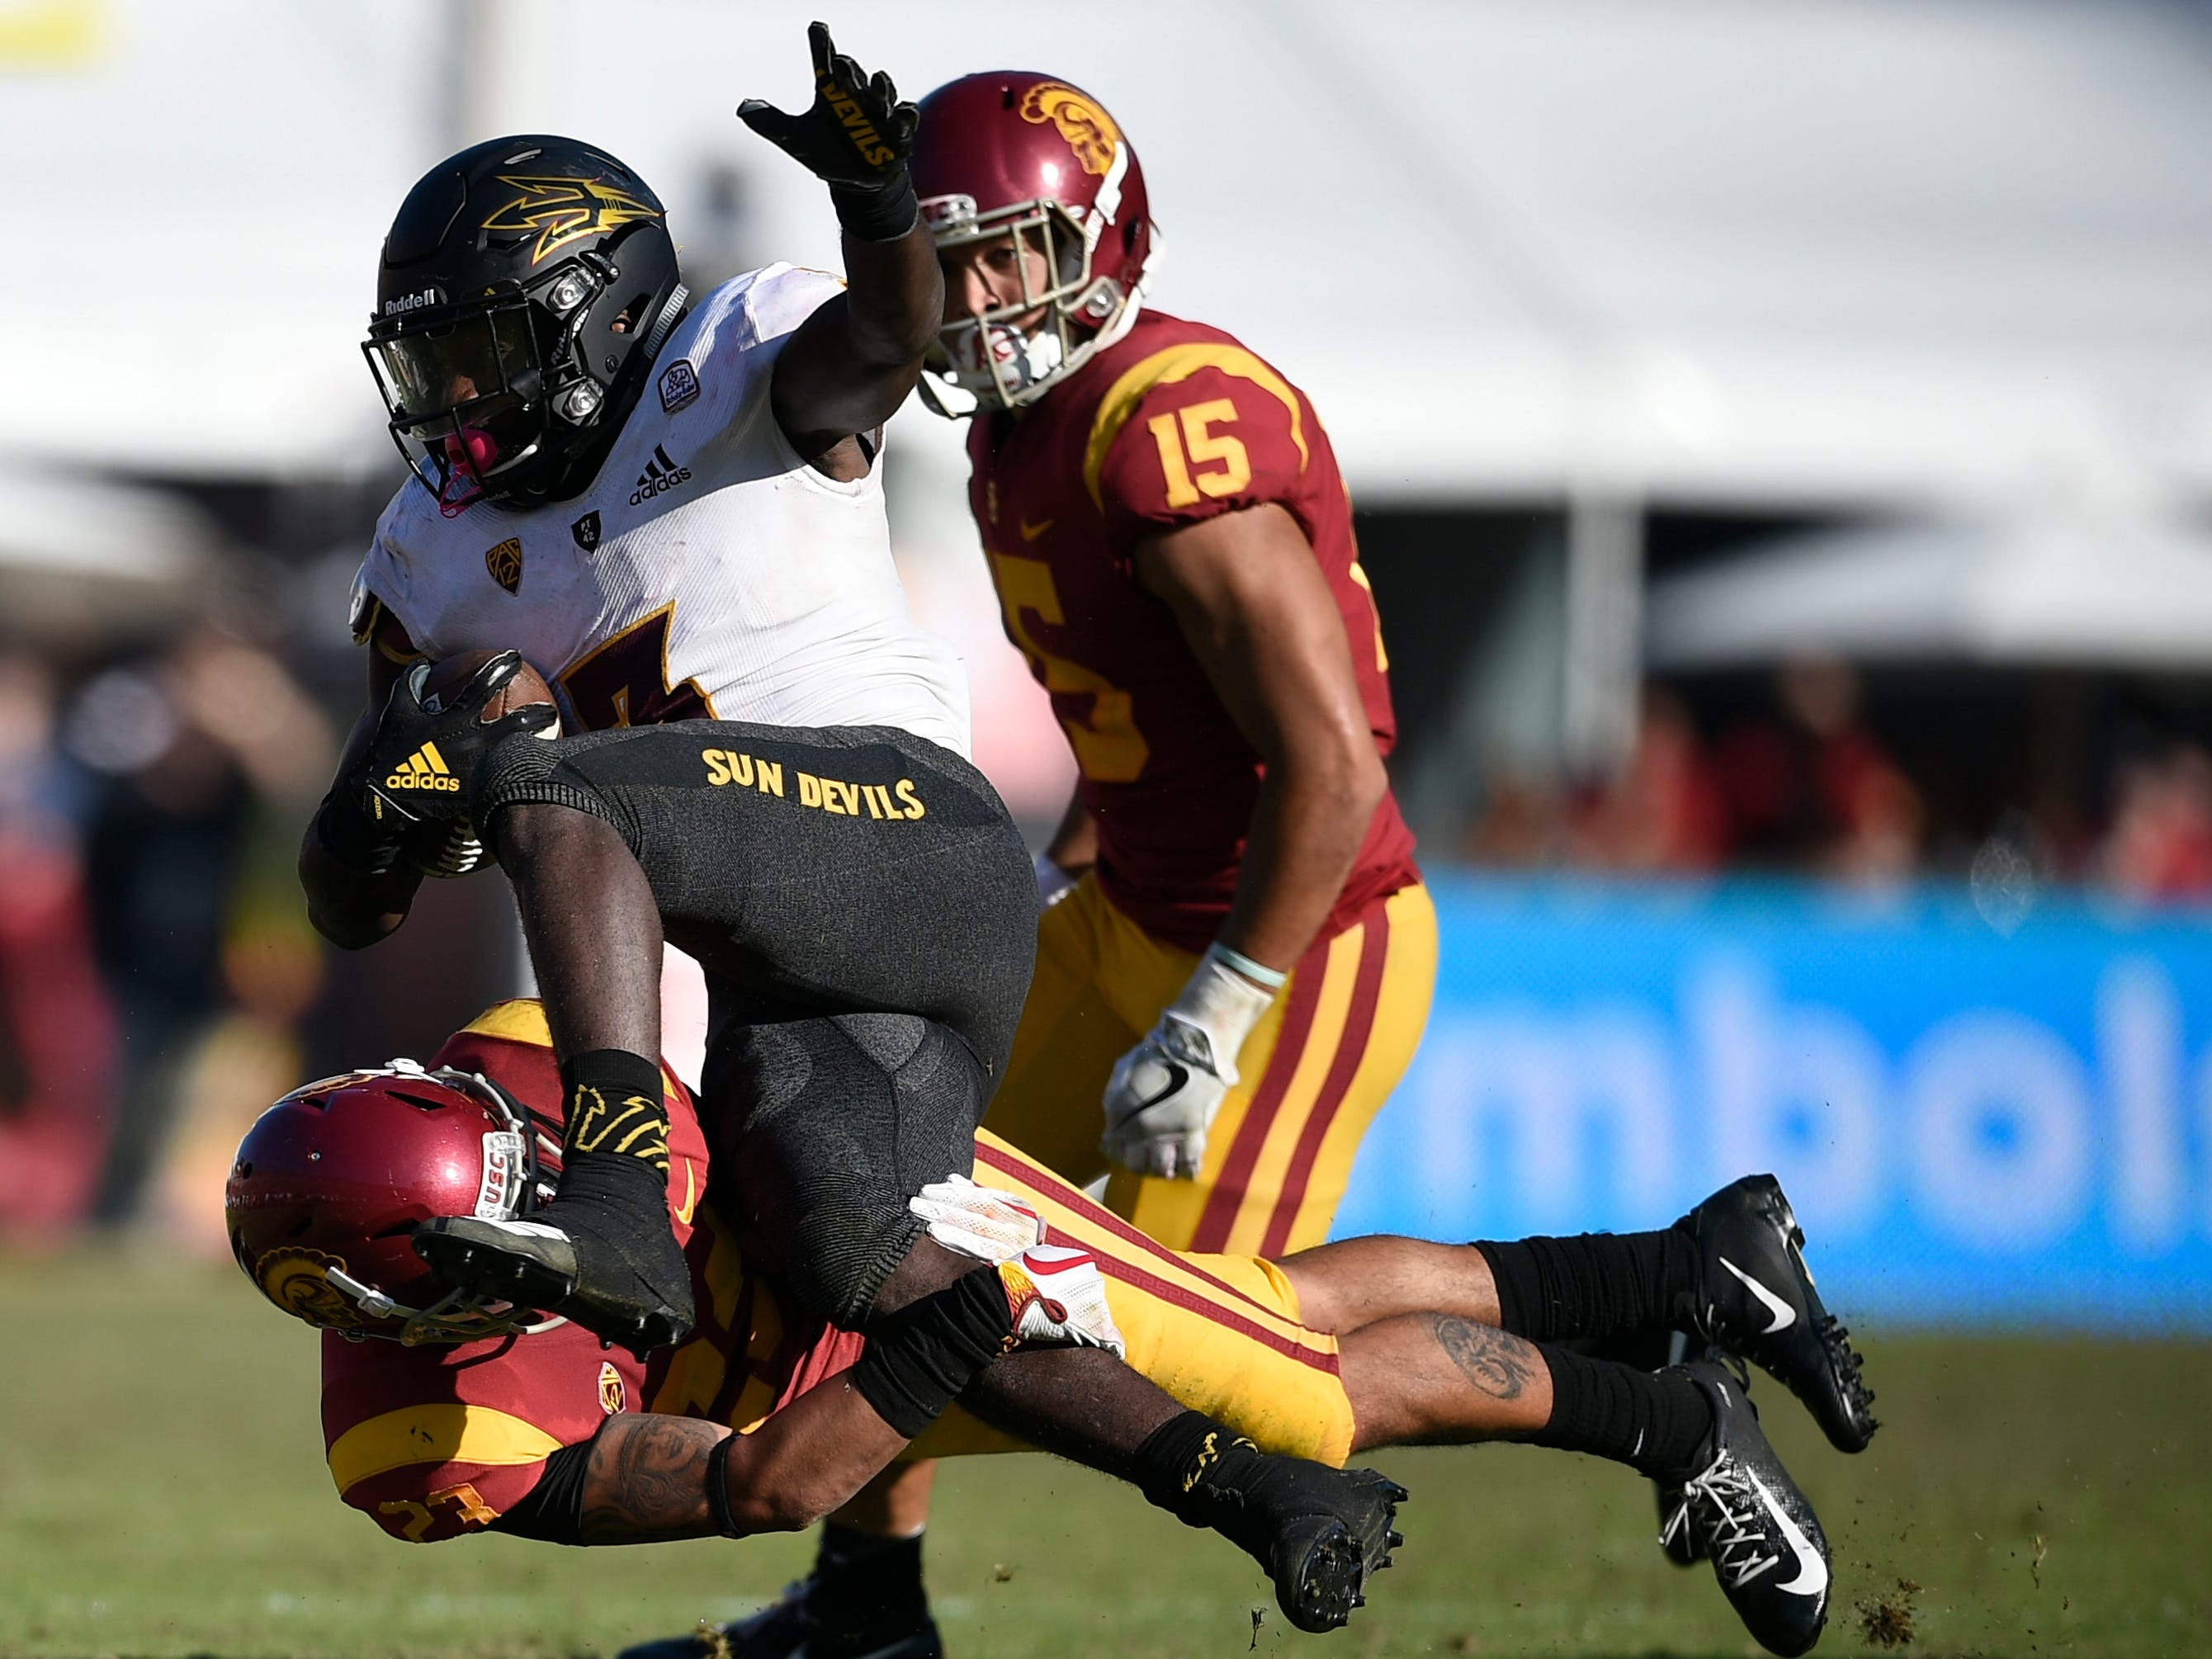 Oct 27, 2018; Los Angeles, CA, USA; Arizona State Sun Devils running back Eno Benjamin (3) runs the ball while Southern California Trojans corner back Jonathan Lockett (23) defends during the second half at Los Angeles Memorial Coliseum. Mandatory Credit: Kelvin Kuo-USA TODAY Sports